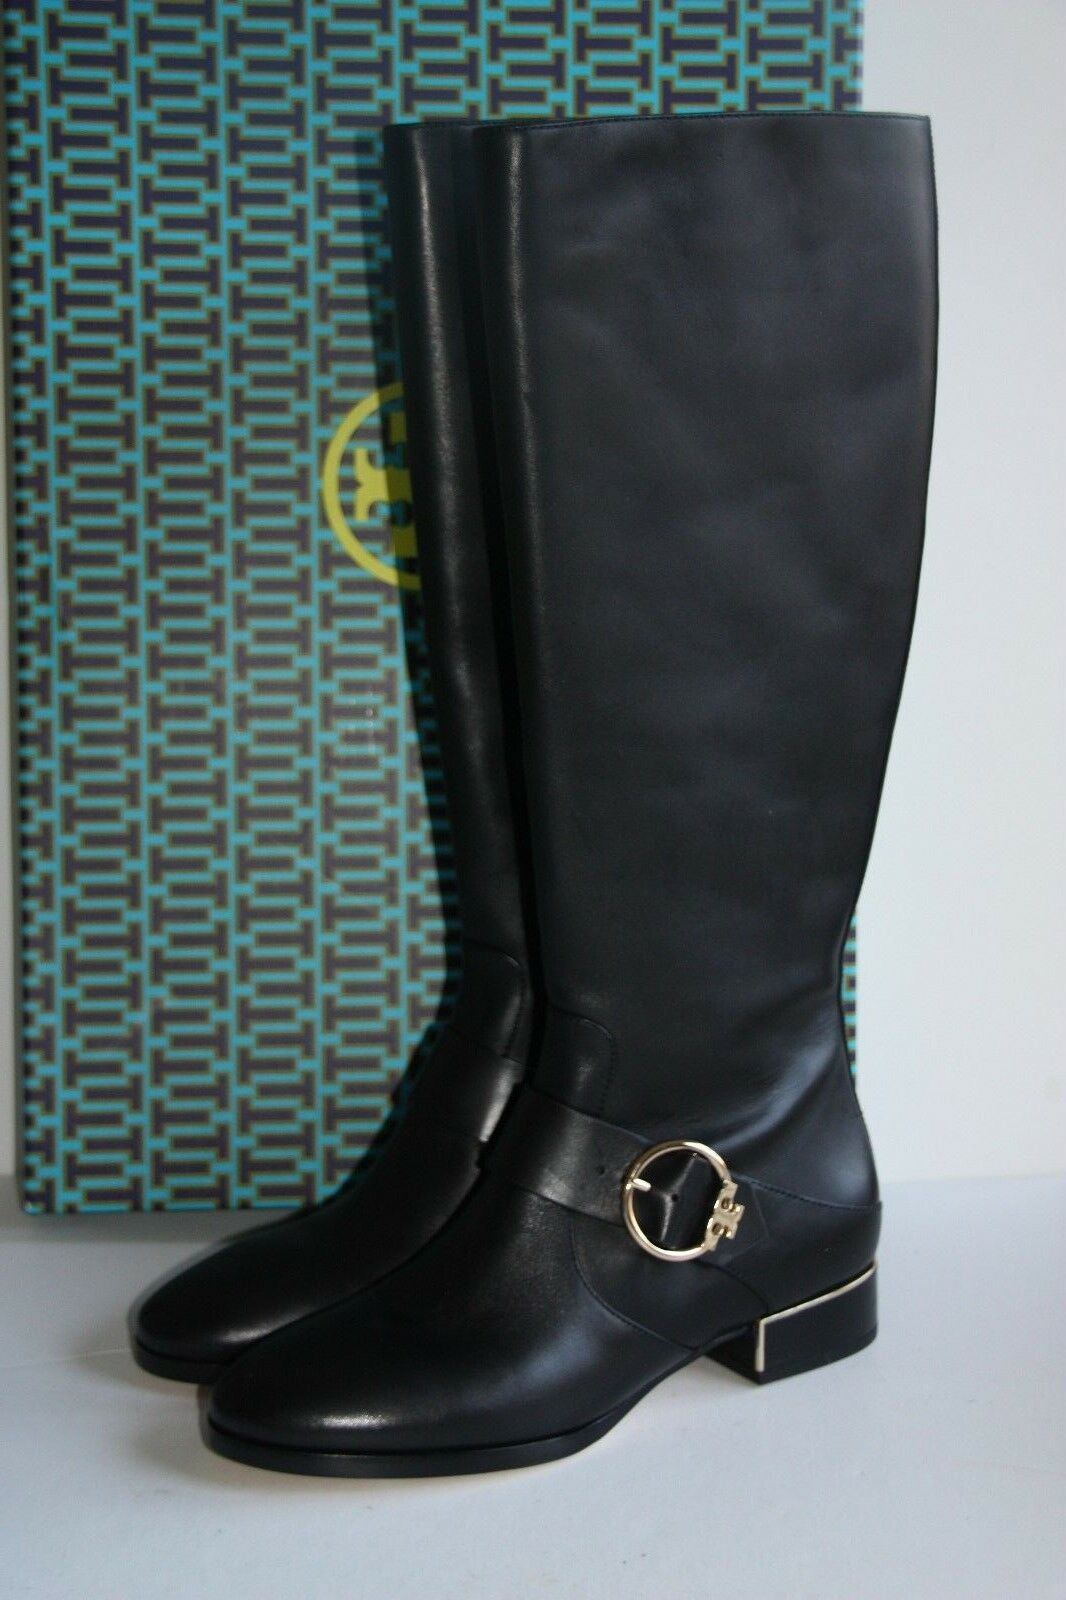 498 NEW Tory Burch SOFIA Black Leather Buckled Tall Riding Boots 7.5 / 37.5